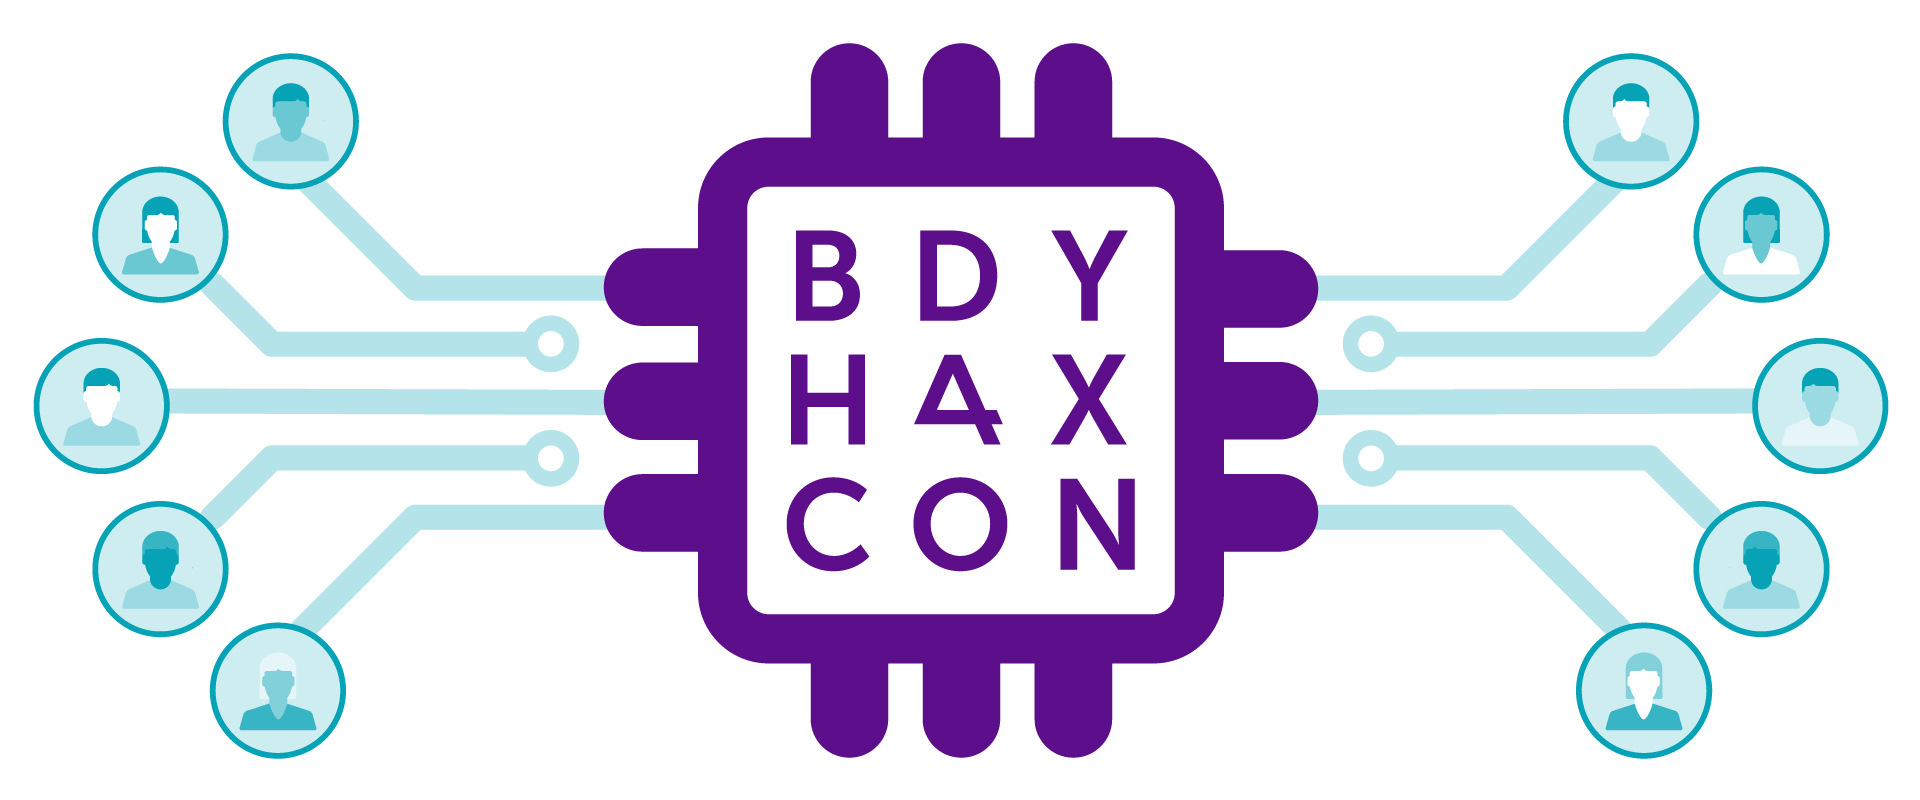 bdyhaxc-aboutus-chipnet-purple-teal-1920x800